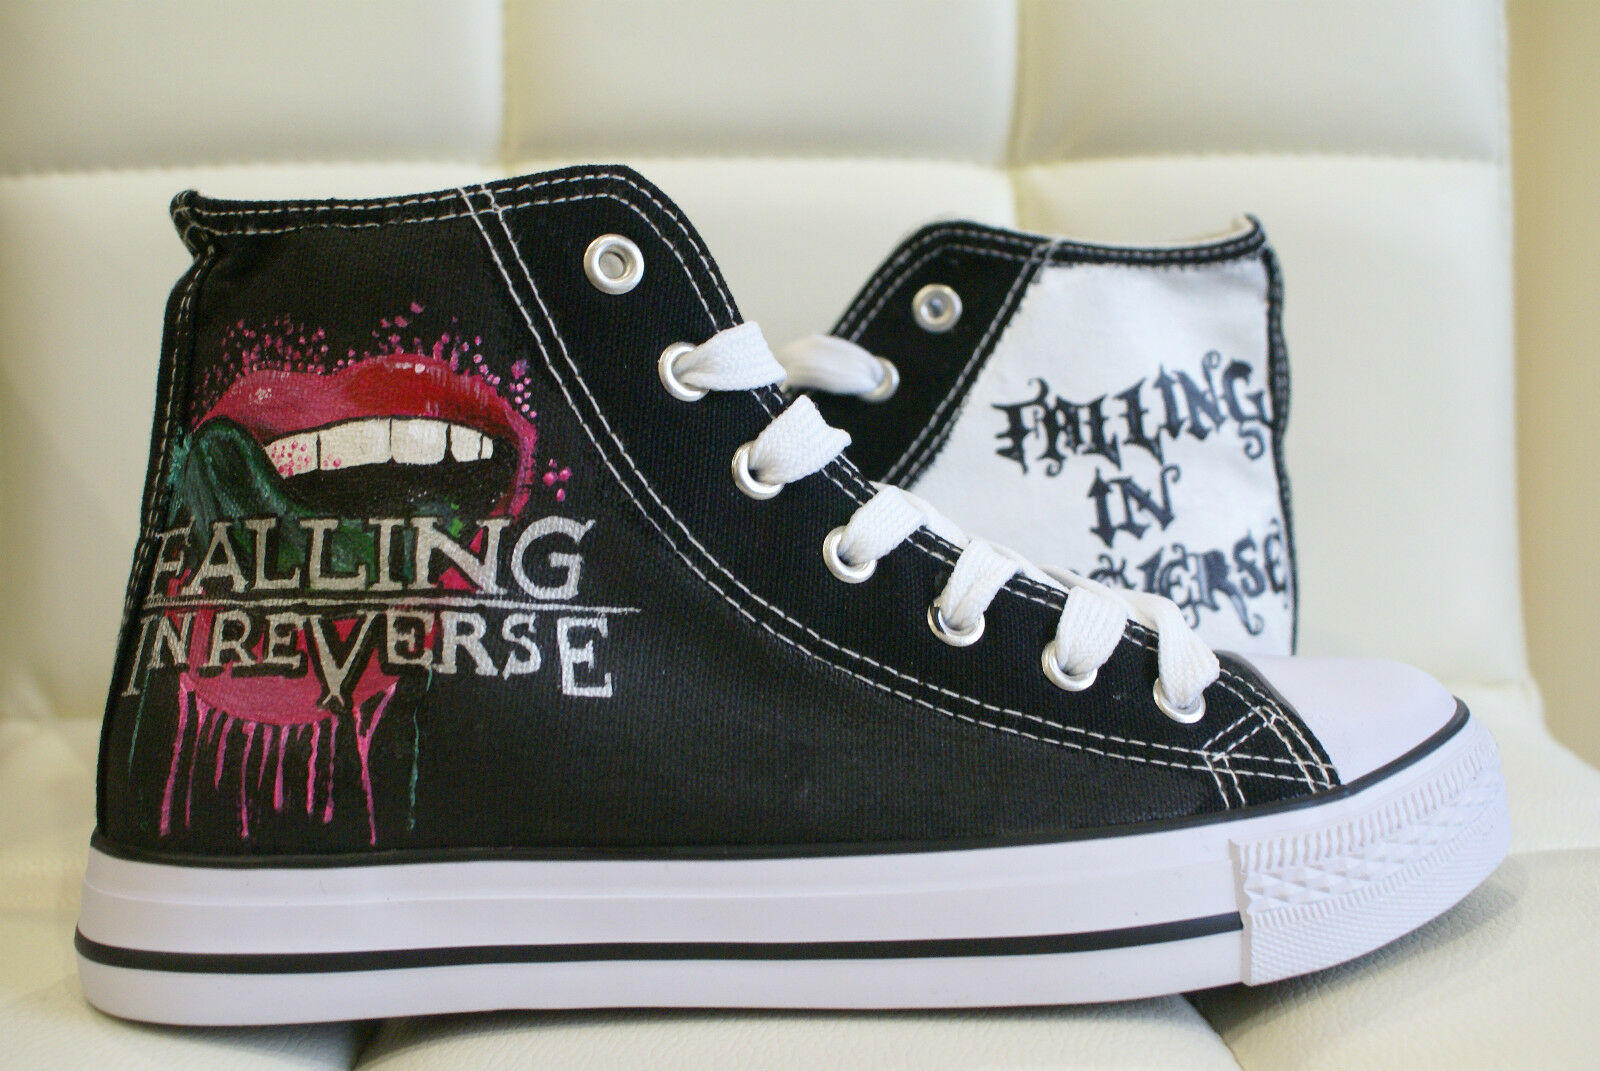 FALLING IN REVERSE INSPIRED CUSTOM HAND PAINTED HIGH TOPS